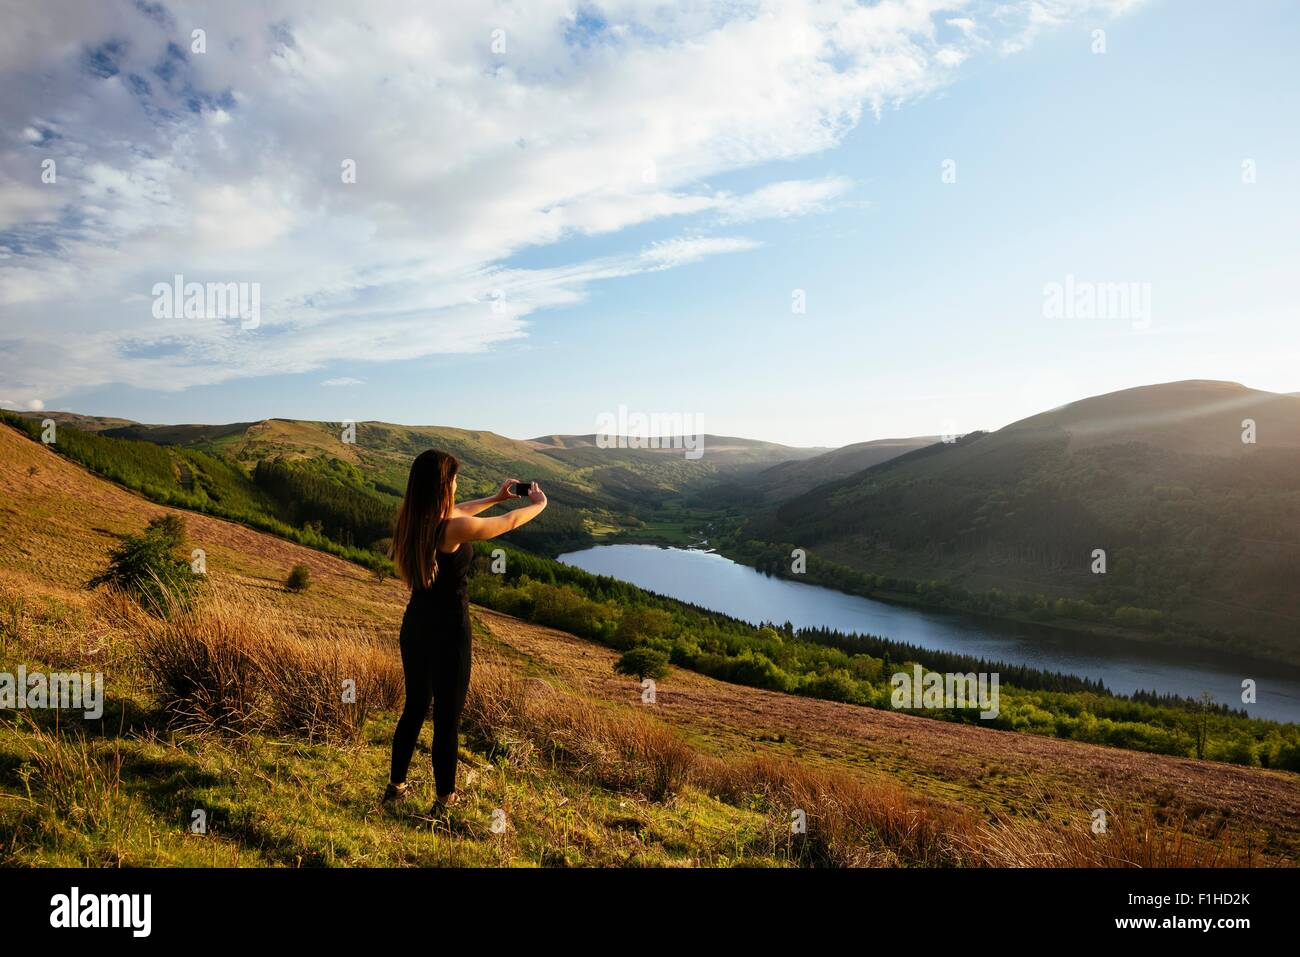 Young woman taking smartphone photograph of Talybont Reservoir in Glyn Collwn valley, Brecon Beacons, Powys, Wales - Stock Image